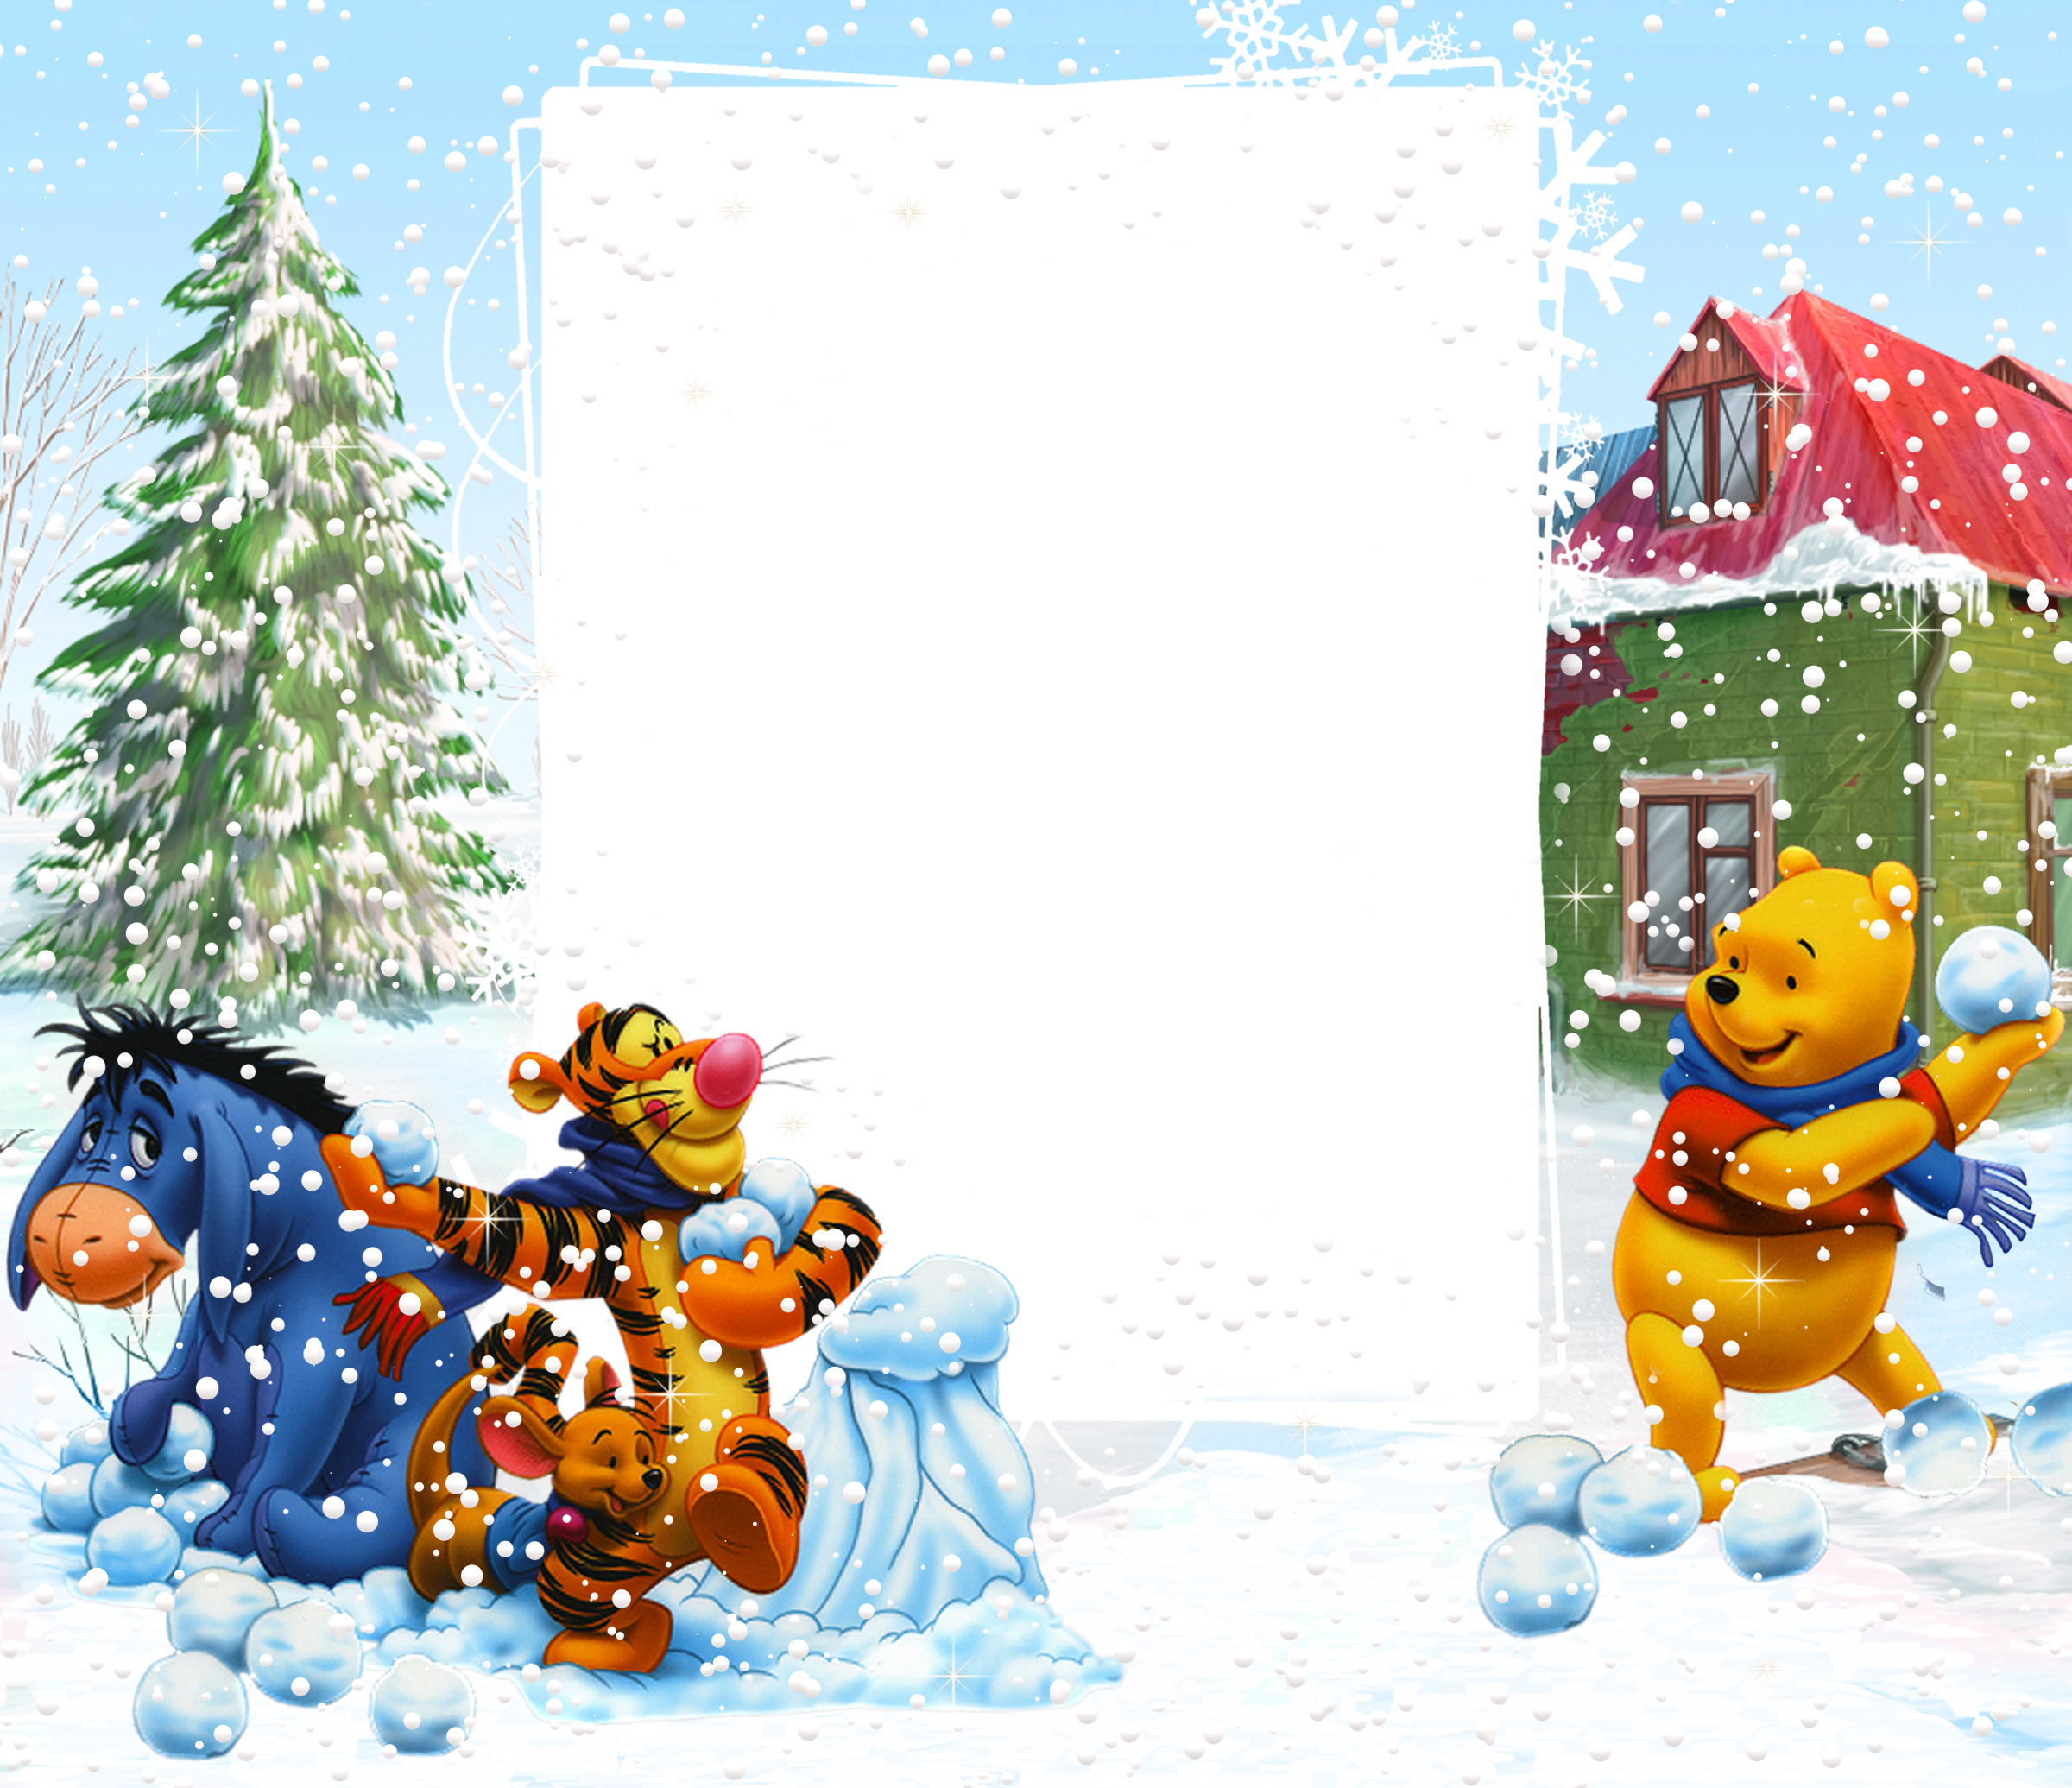 clipart freeuse download Snow borders clipart. Winnie the pooh winter